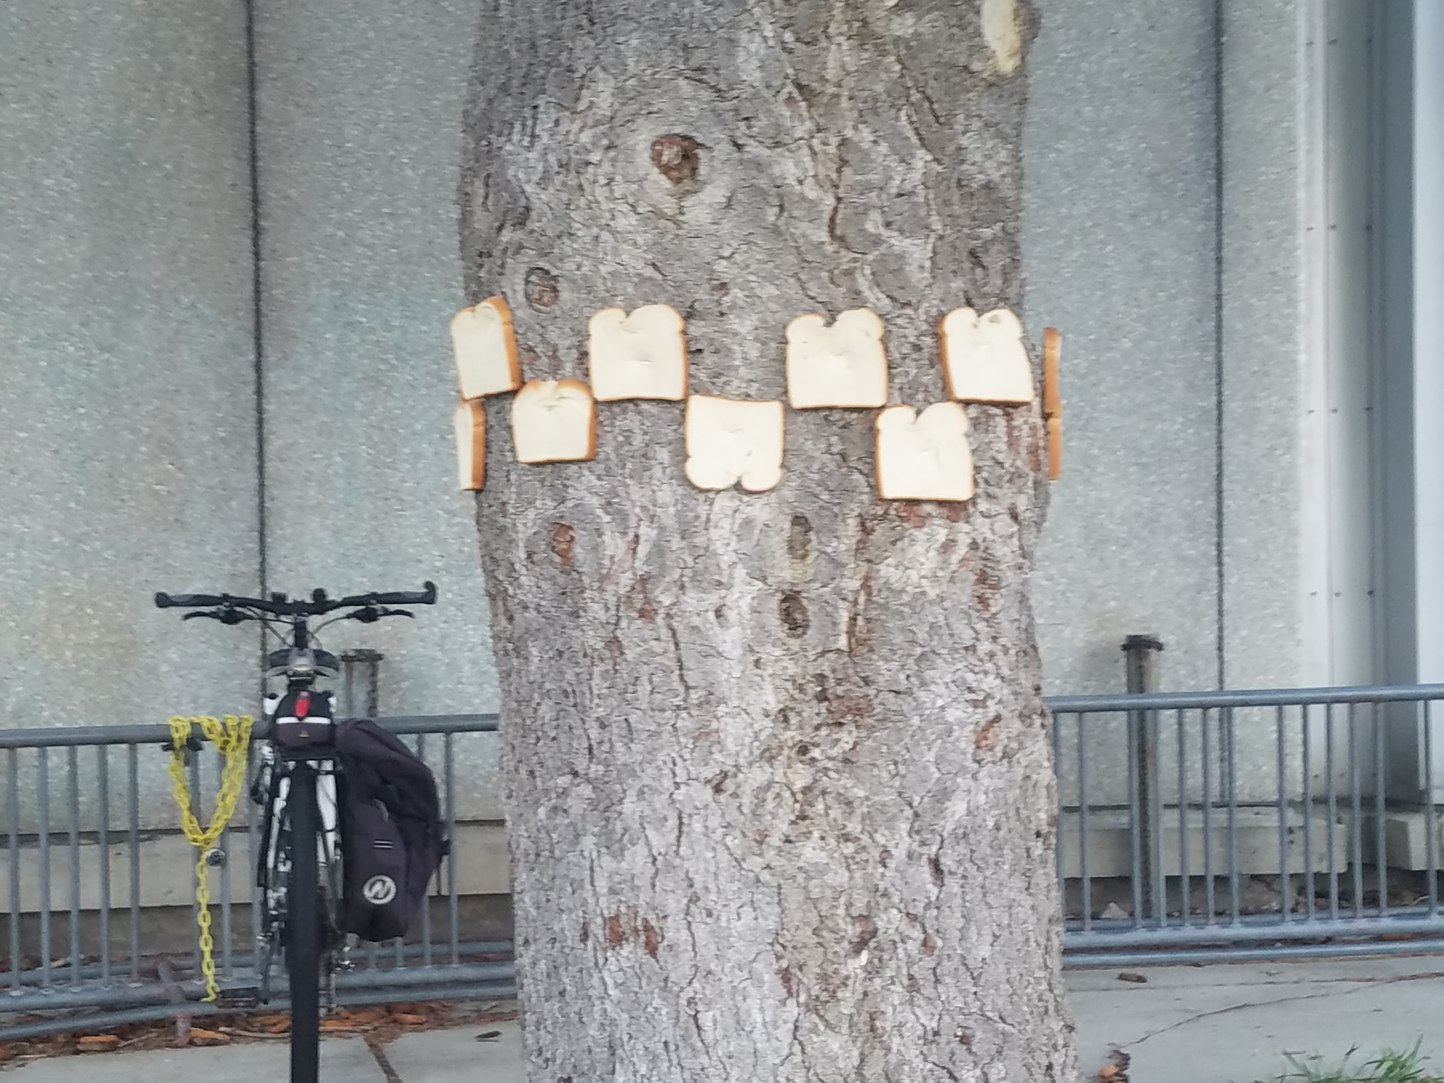 Someone stapled bread to the trees at my school - meme